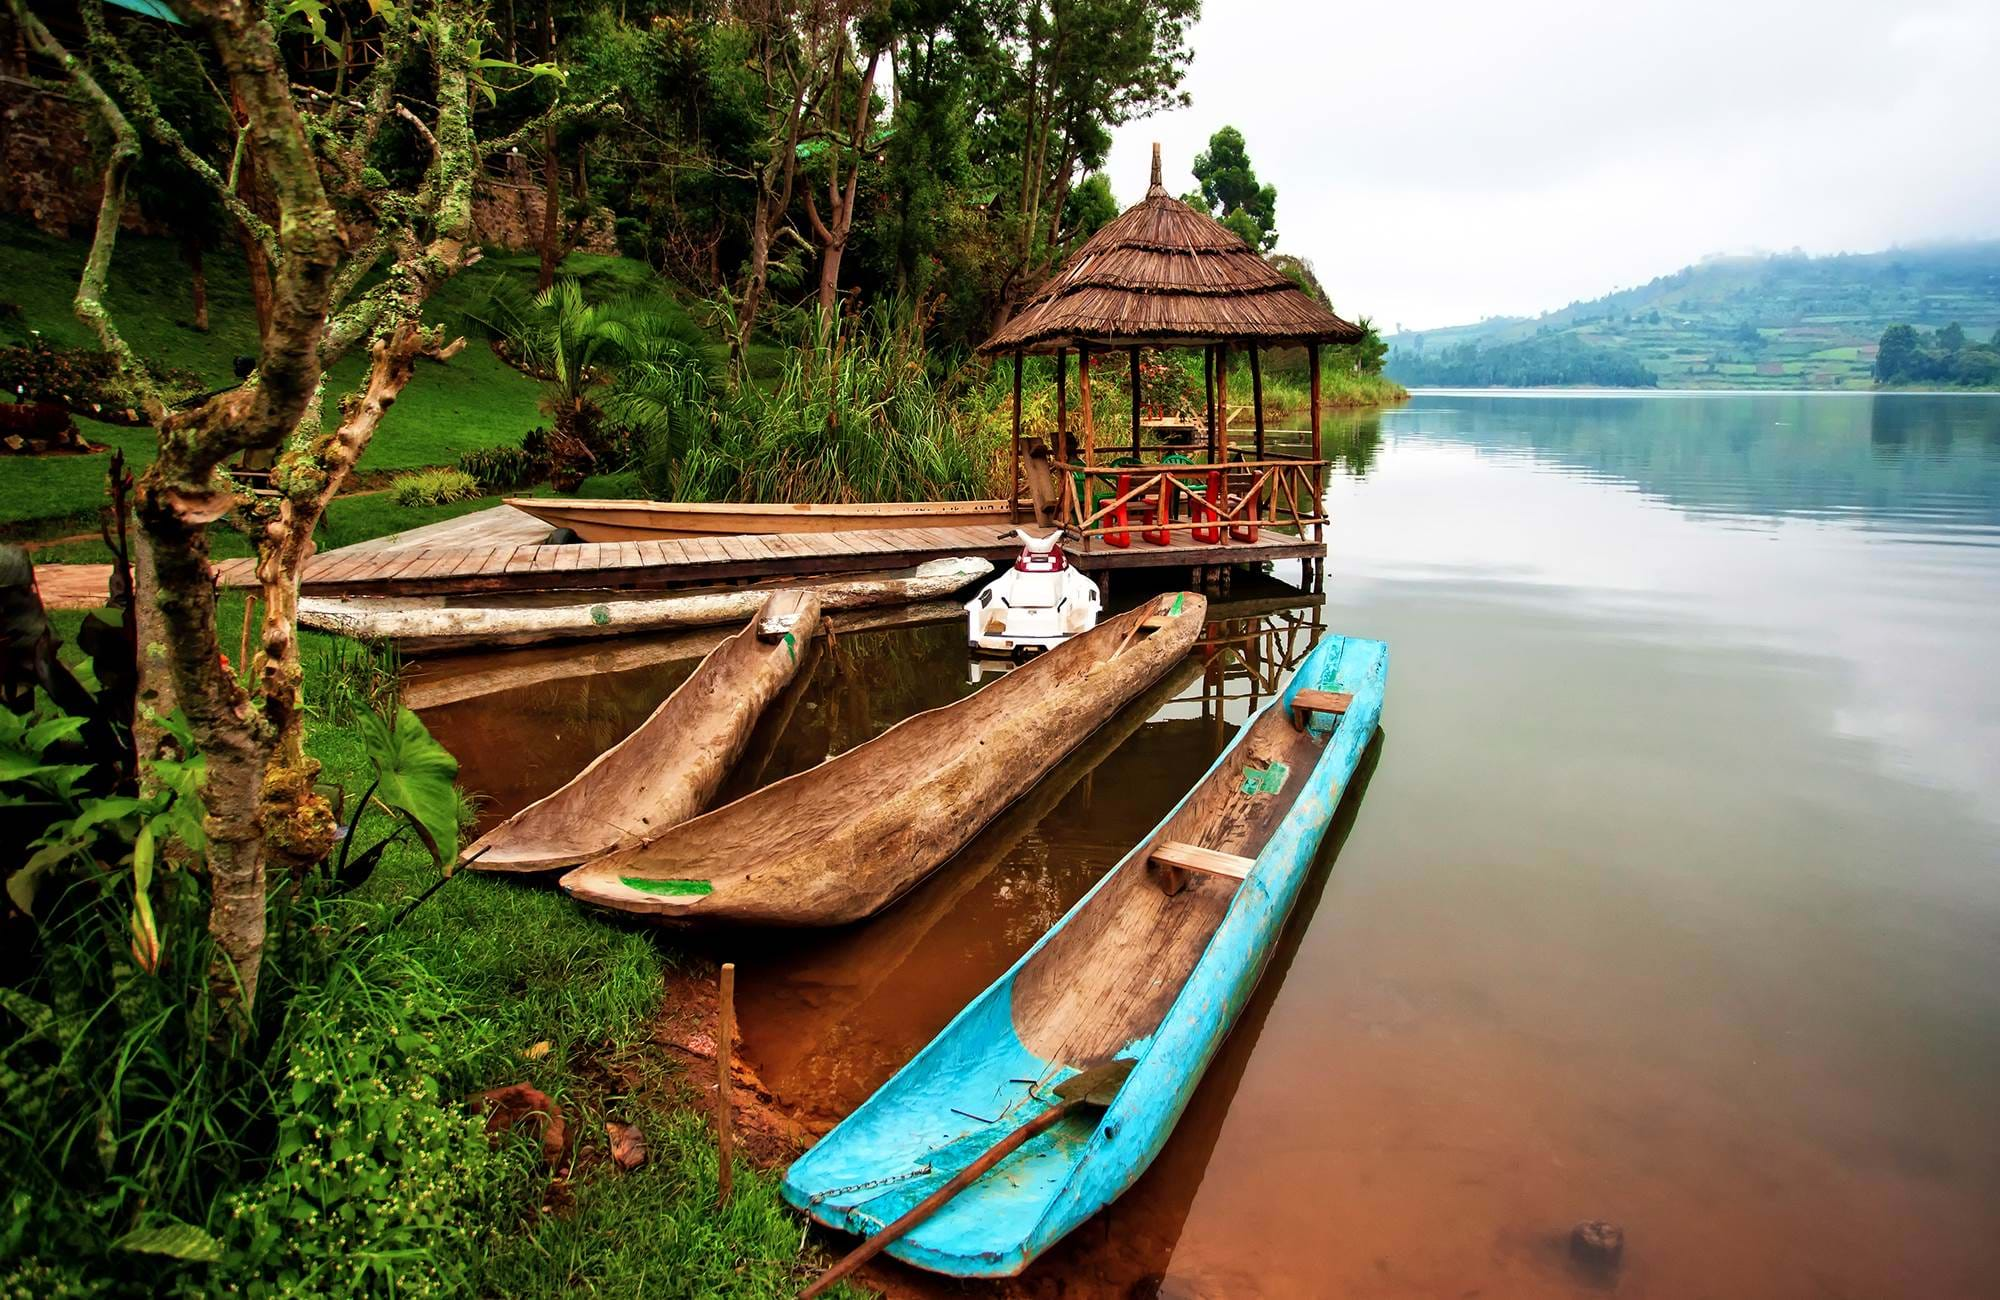 uganda-lake-bunyonyi-boats-house